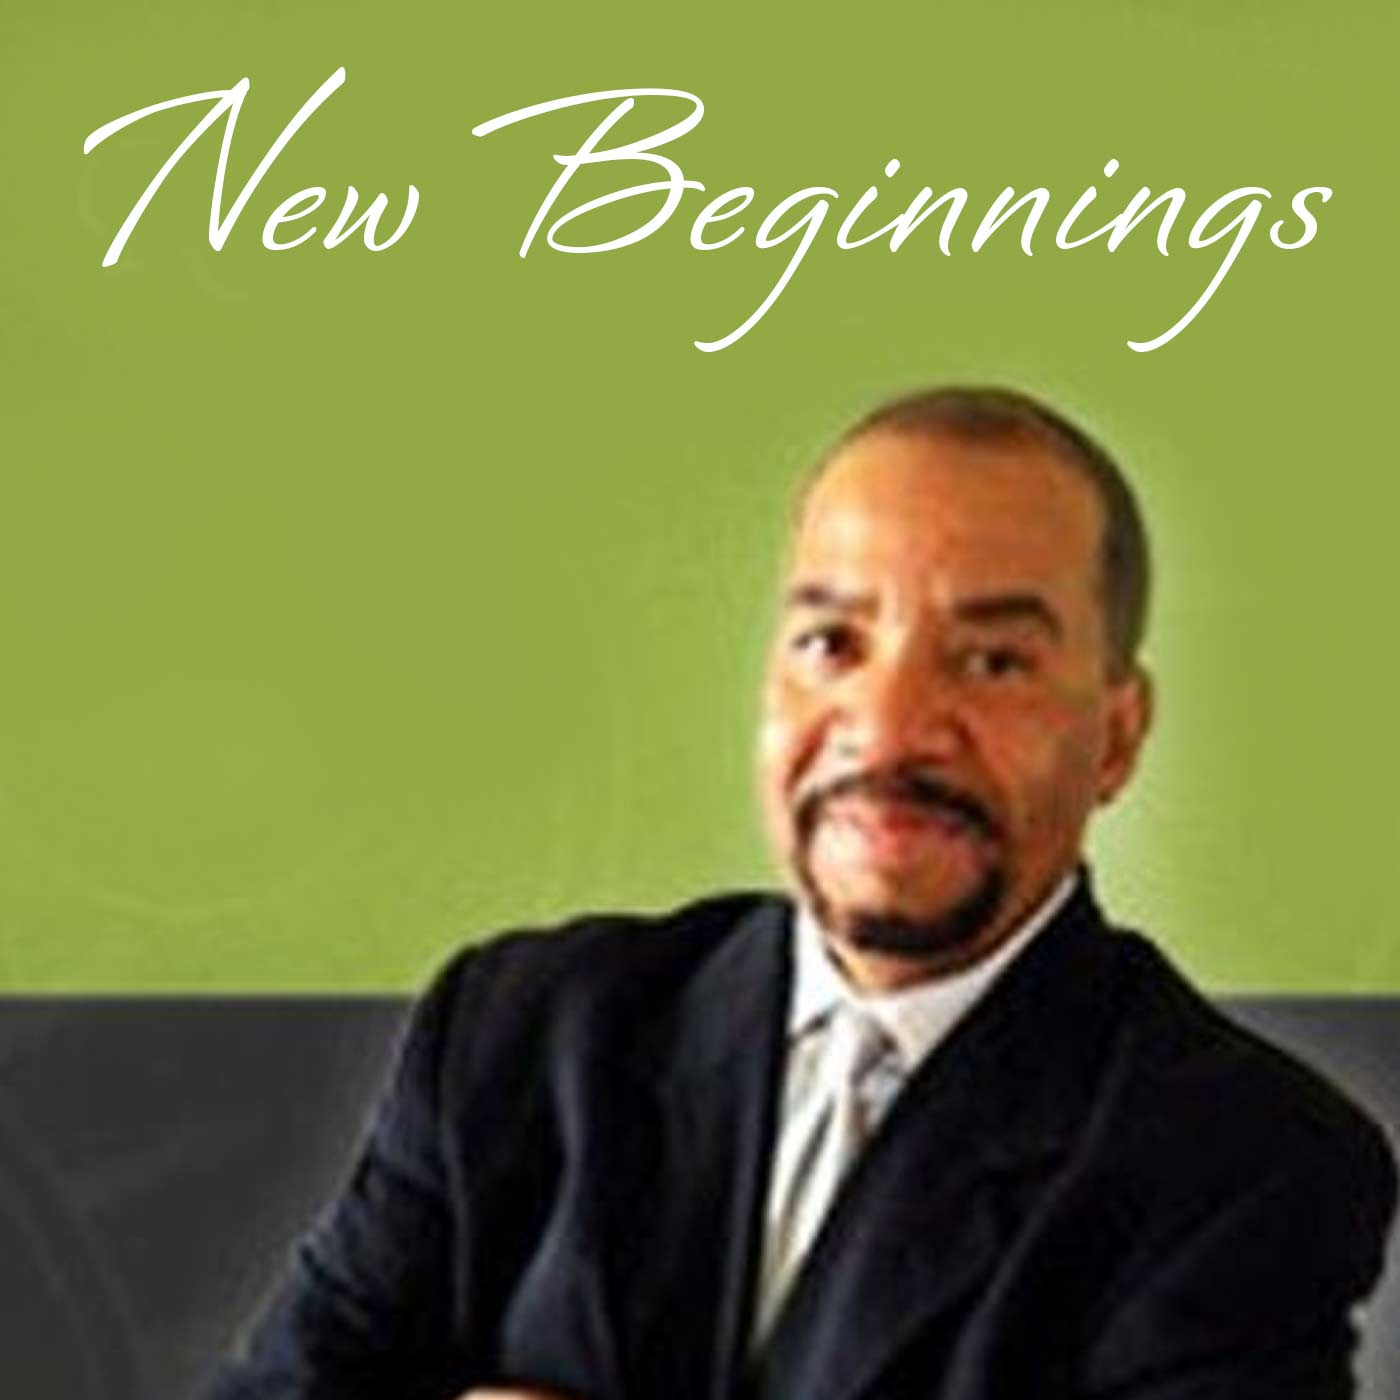 New Beginnings - AM950 The Progressive Voice of Minnesota